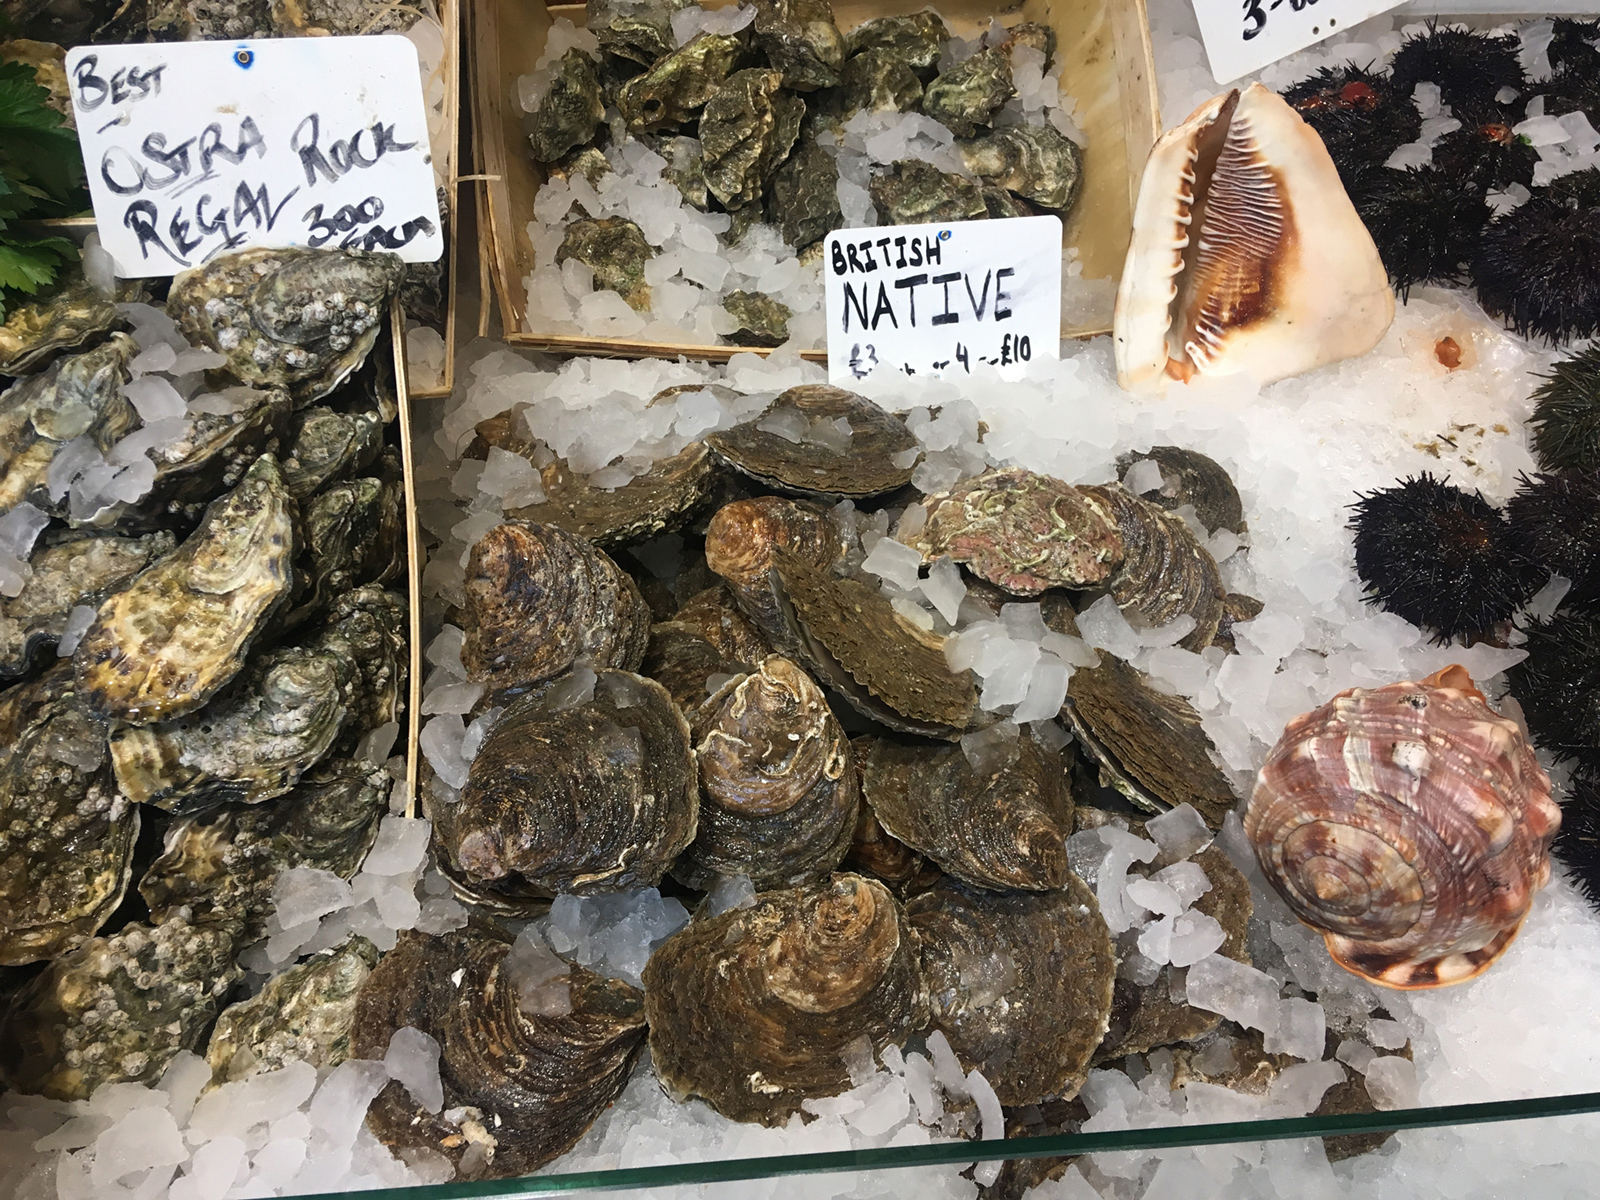 Material research, oyster shells and rock oyster shells